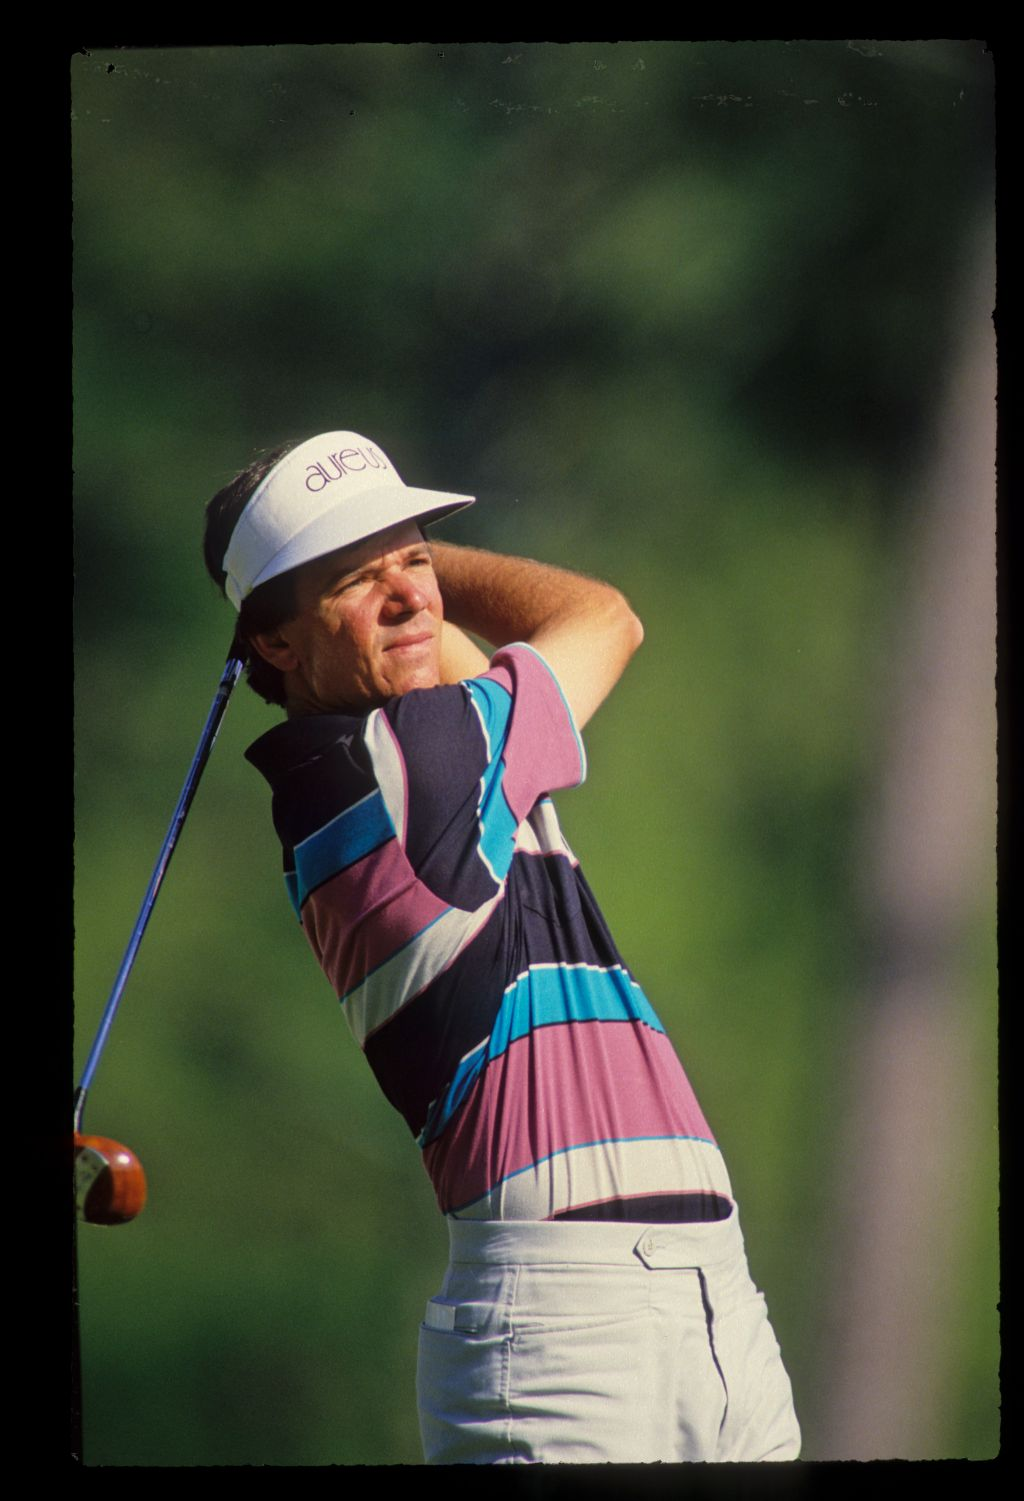 Larry Mize hands high on the tee on his way to winning the 1987 Masters